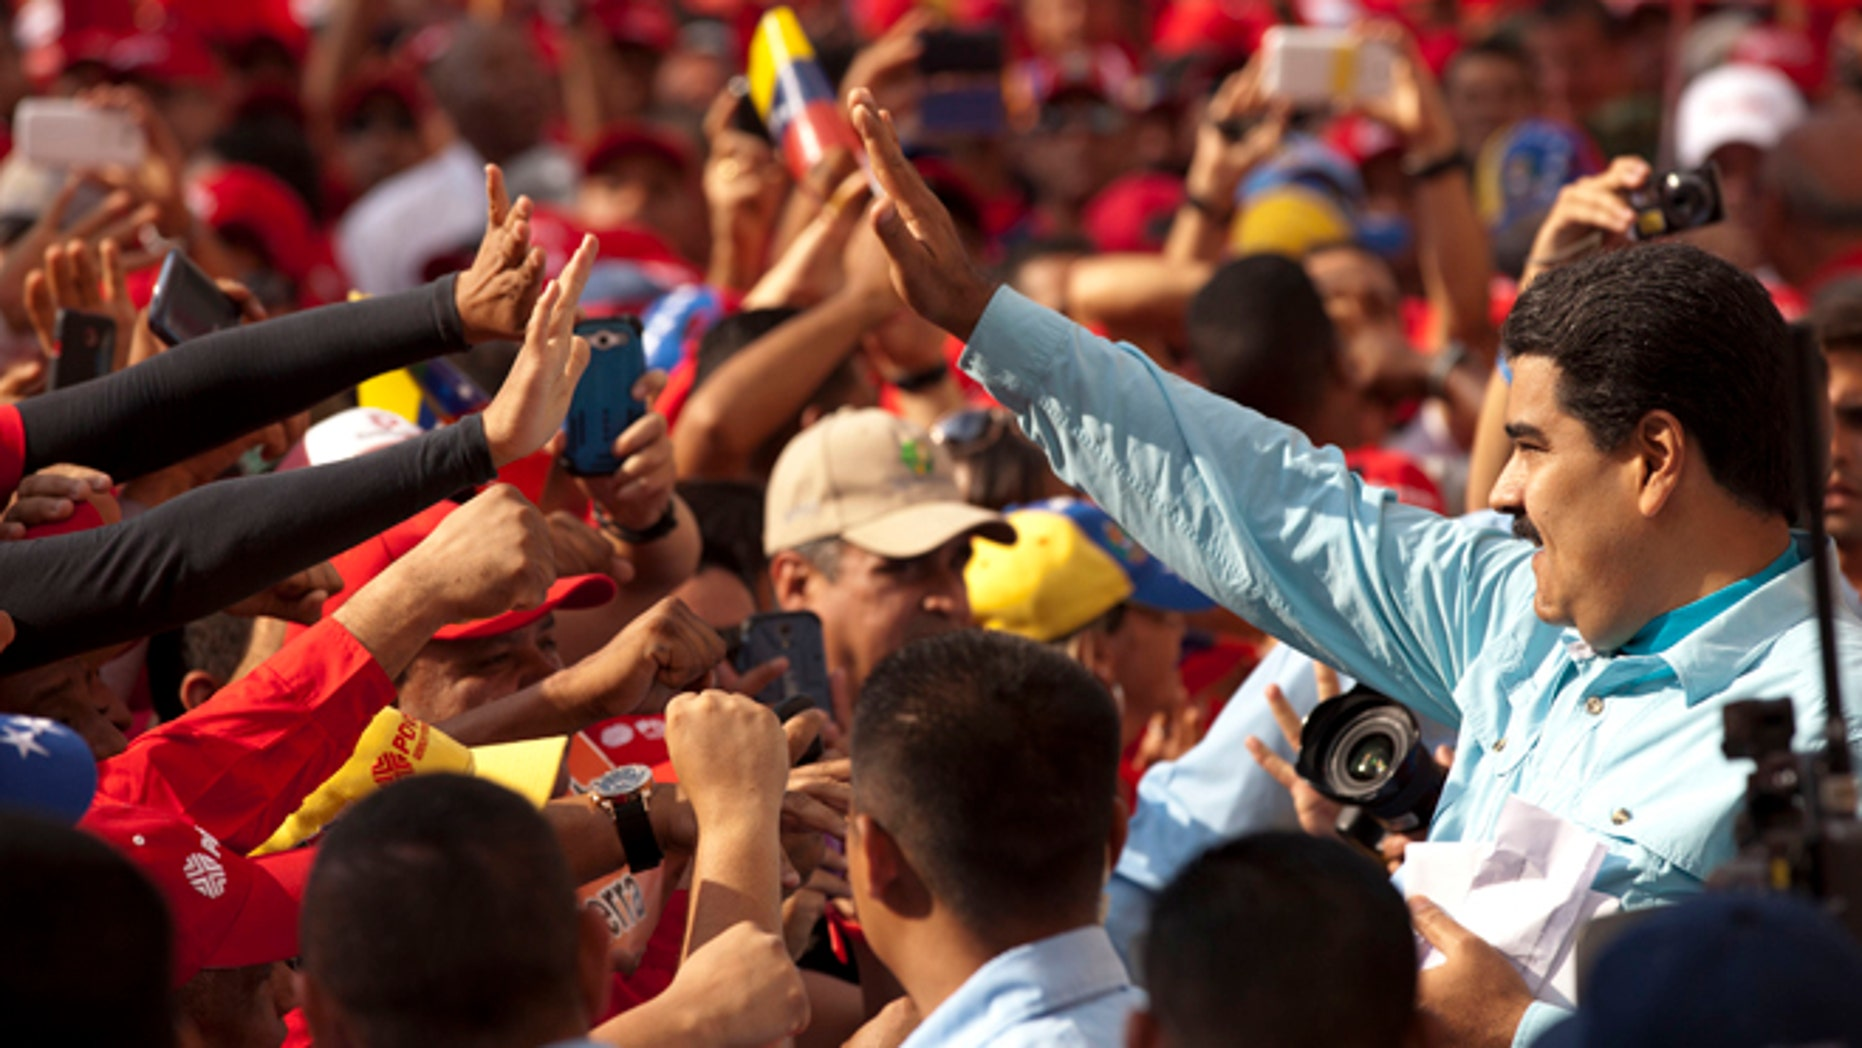 Venezuela's President Nicolas Maduro during an anti-imperialist rally in Caracas, Wednesday, March 18, 2015.